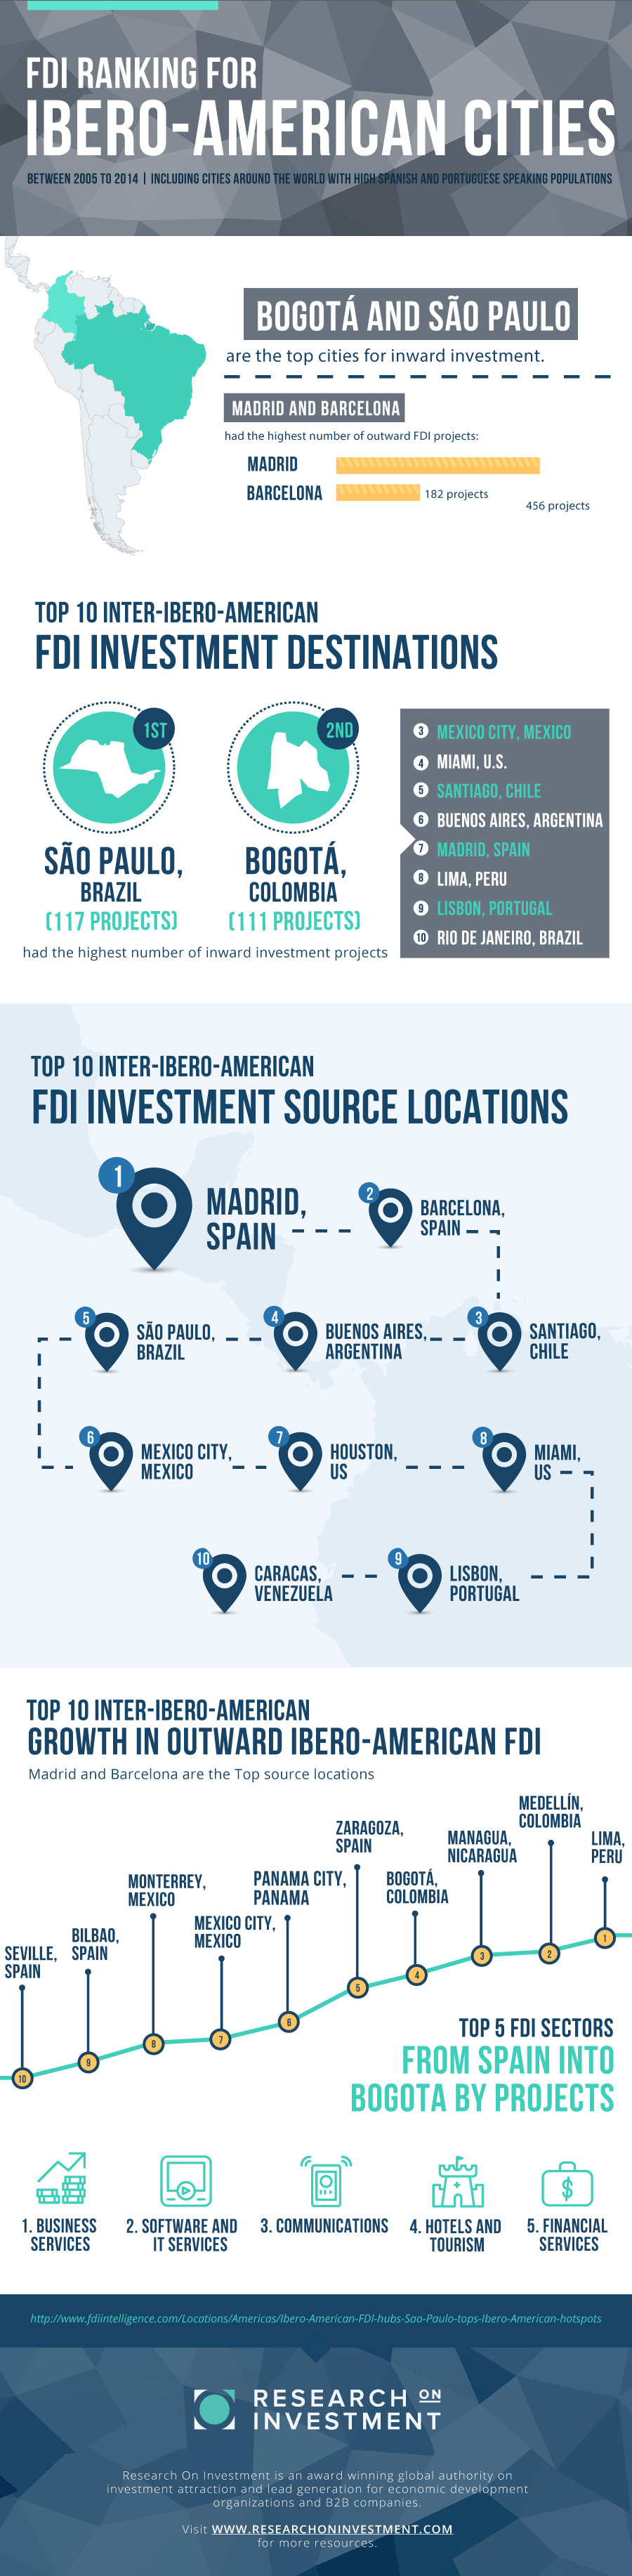 FDI RANKING FOR IBERO-AMERICAN CITIES Infographic